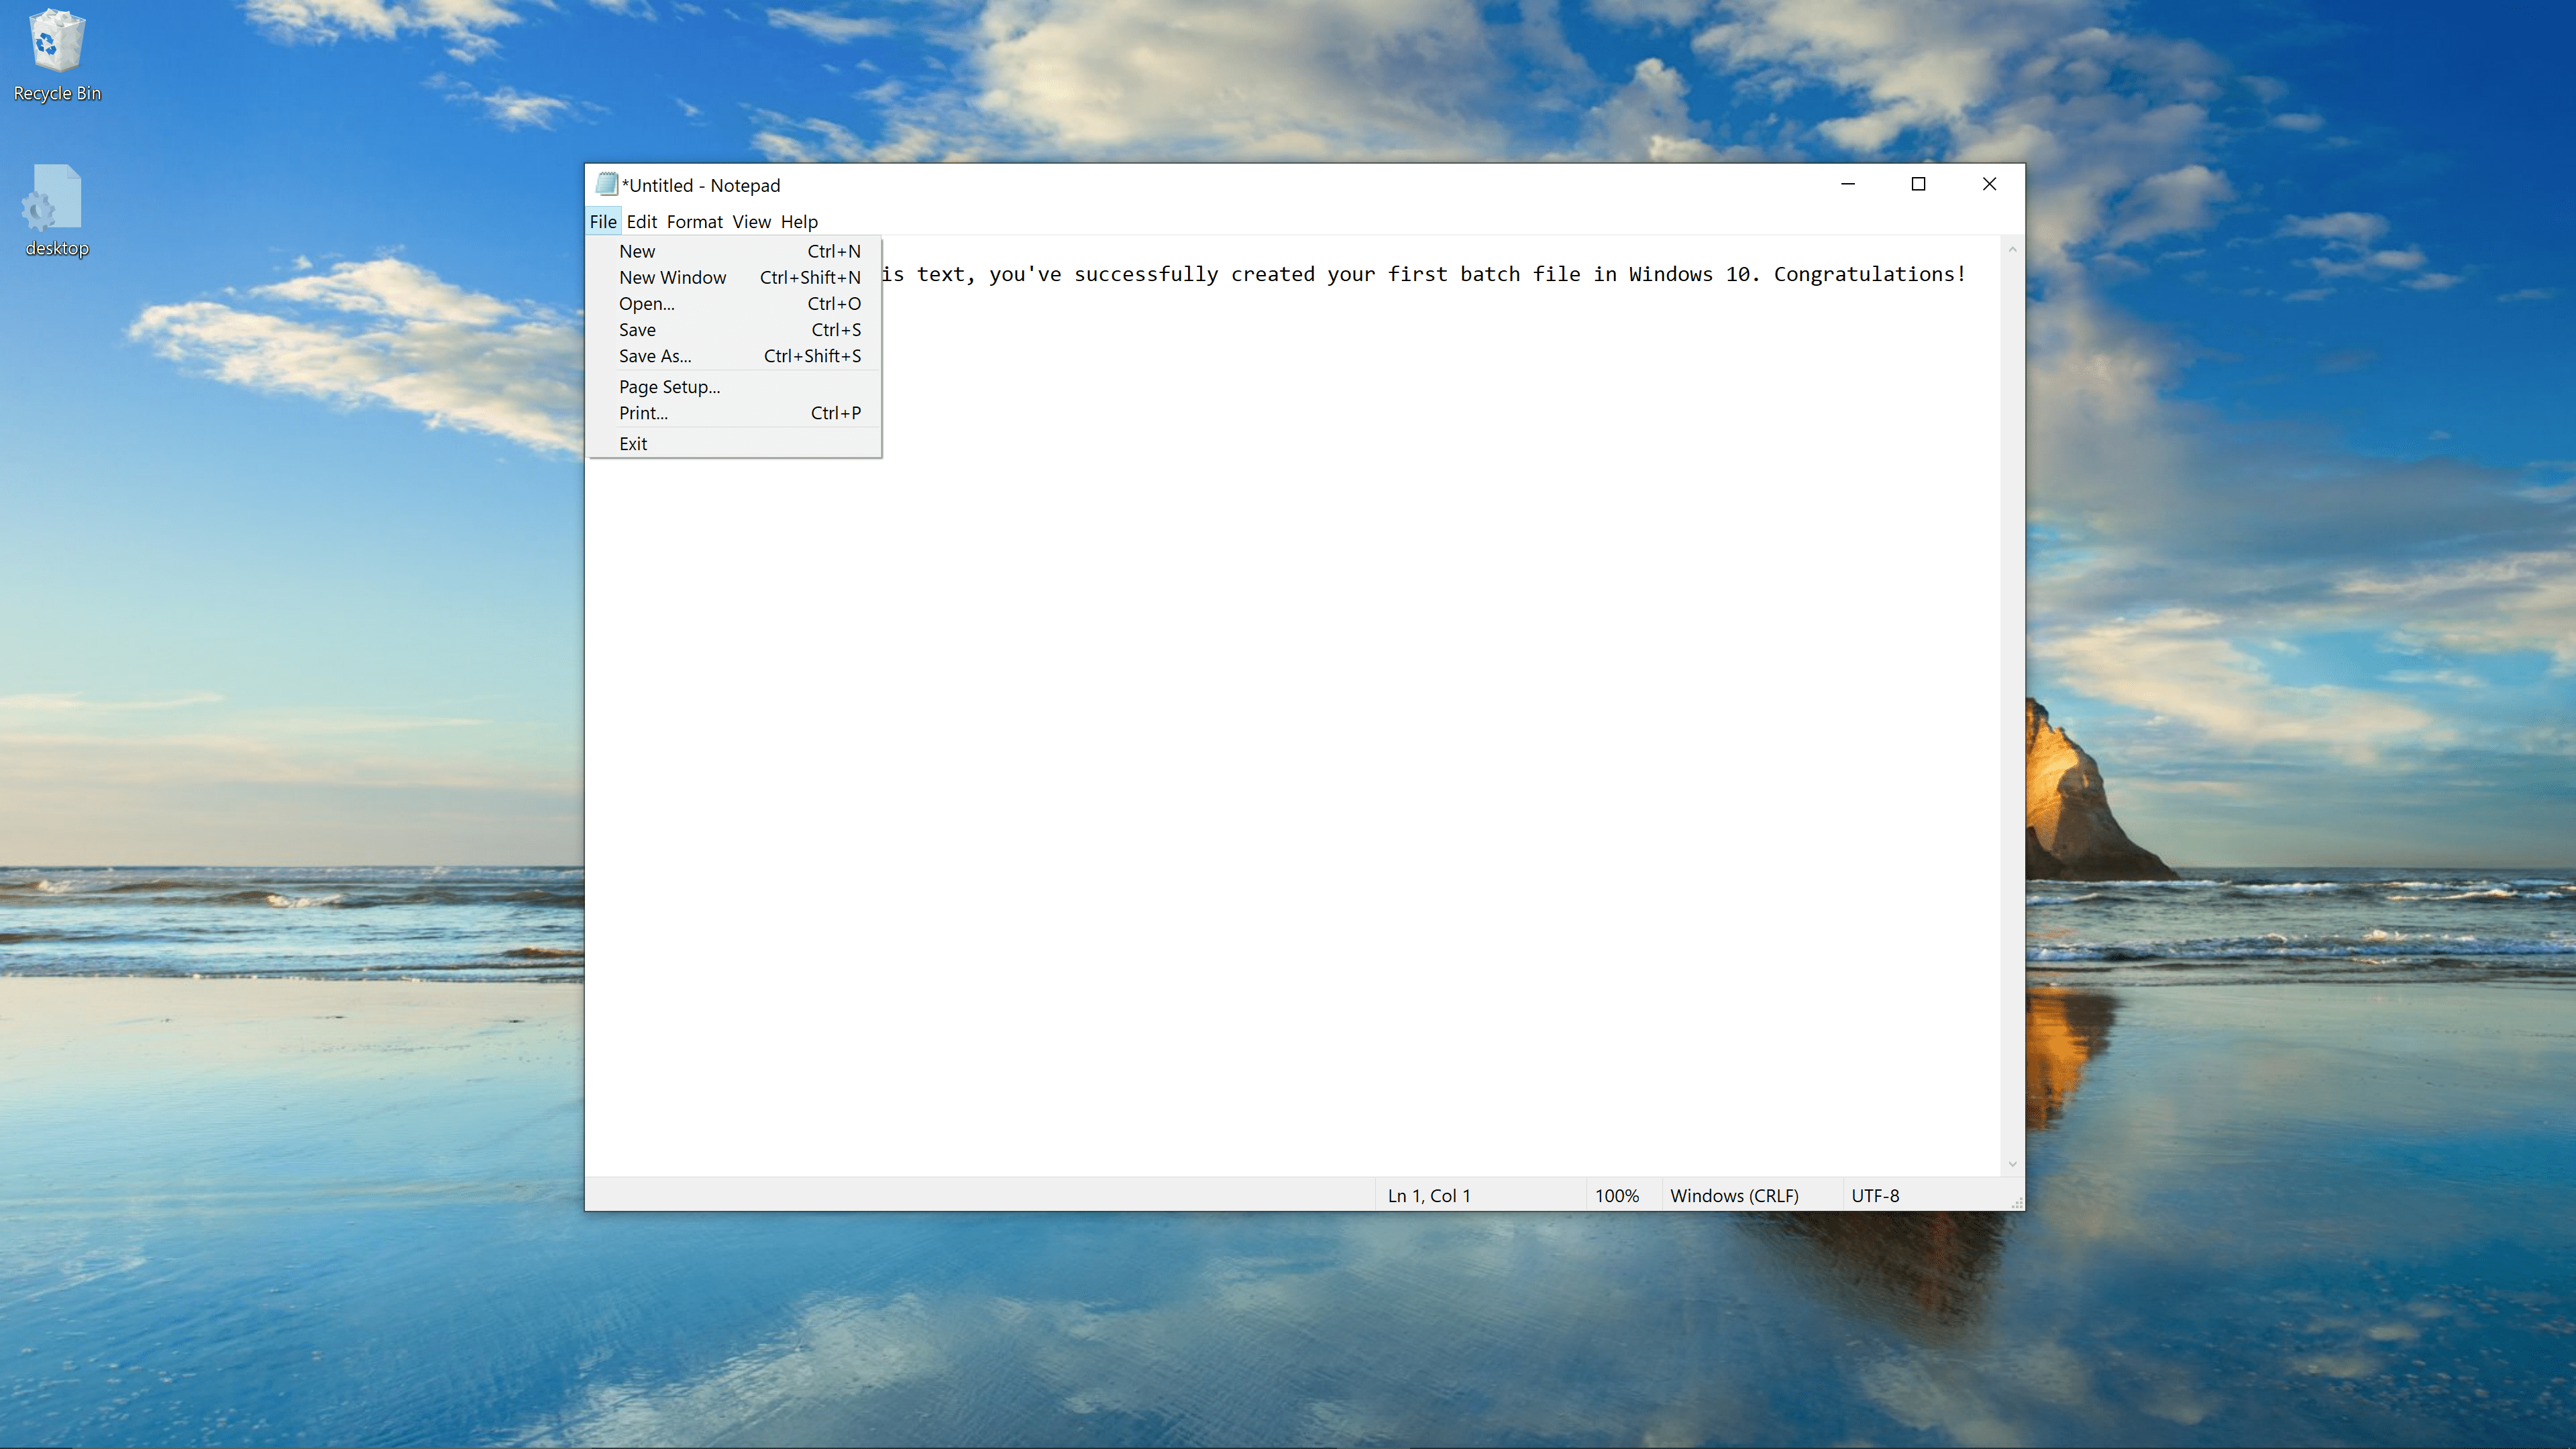 Saving a batch file in Notepad.